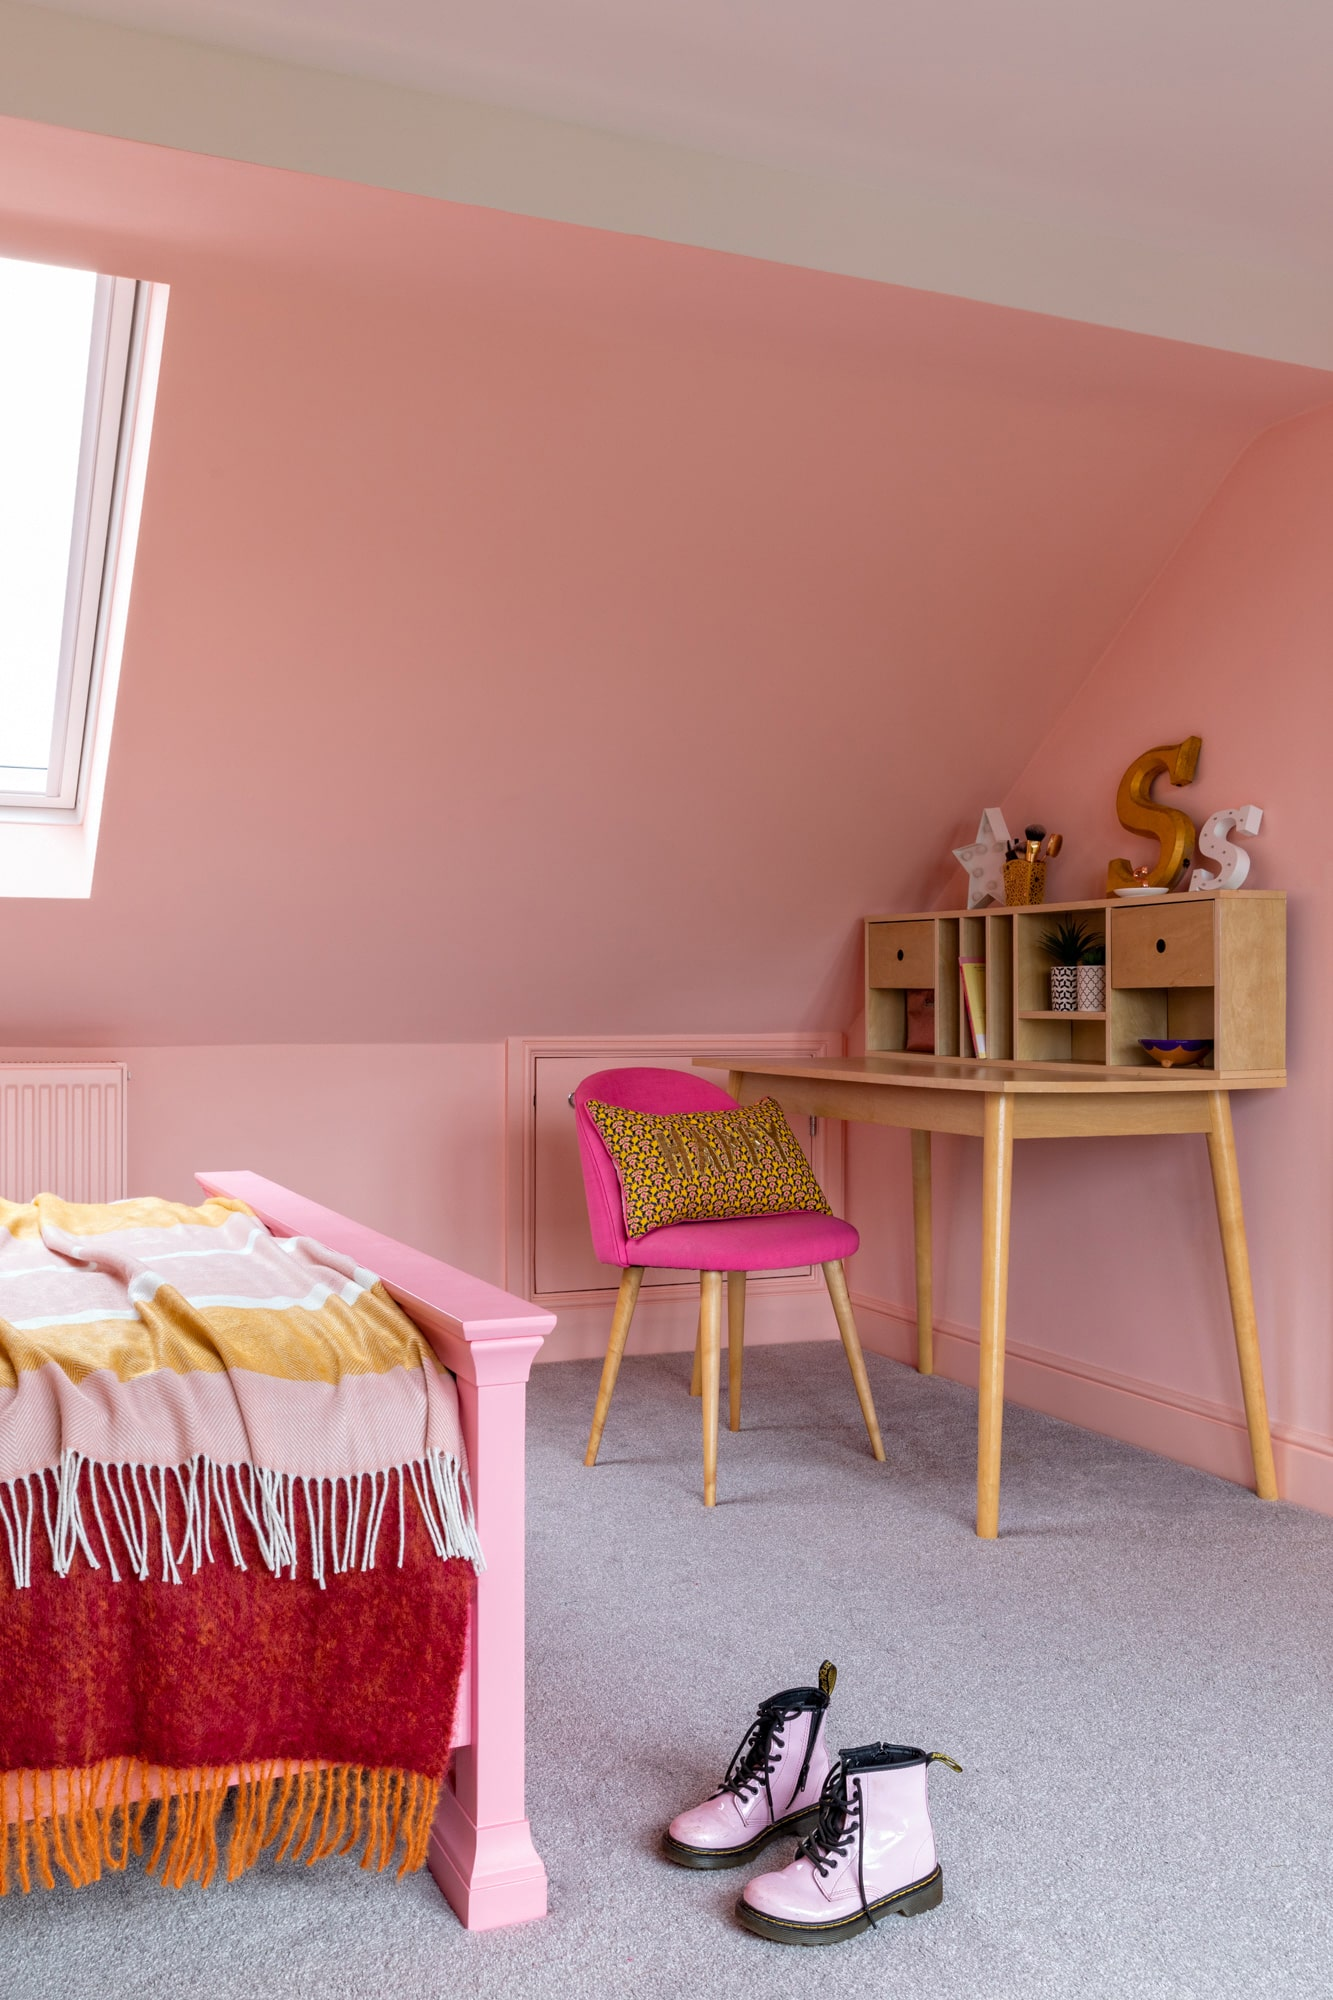 pink girl's bedroom: pink bed, wooden desk with pink chair, ceiling windows